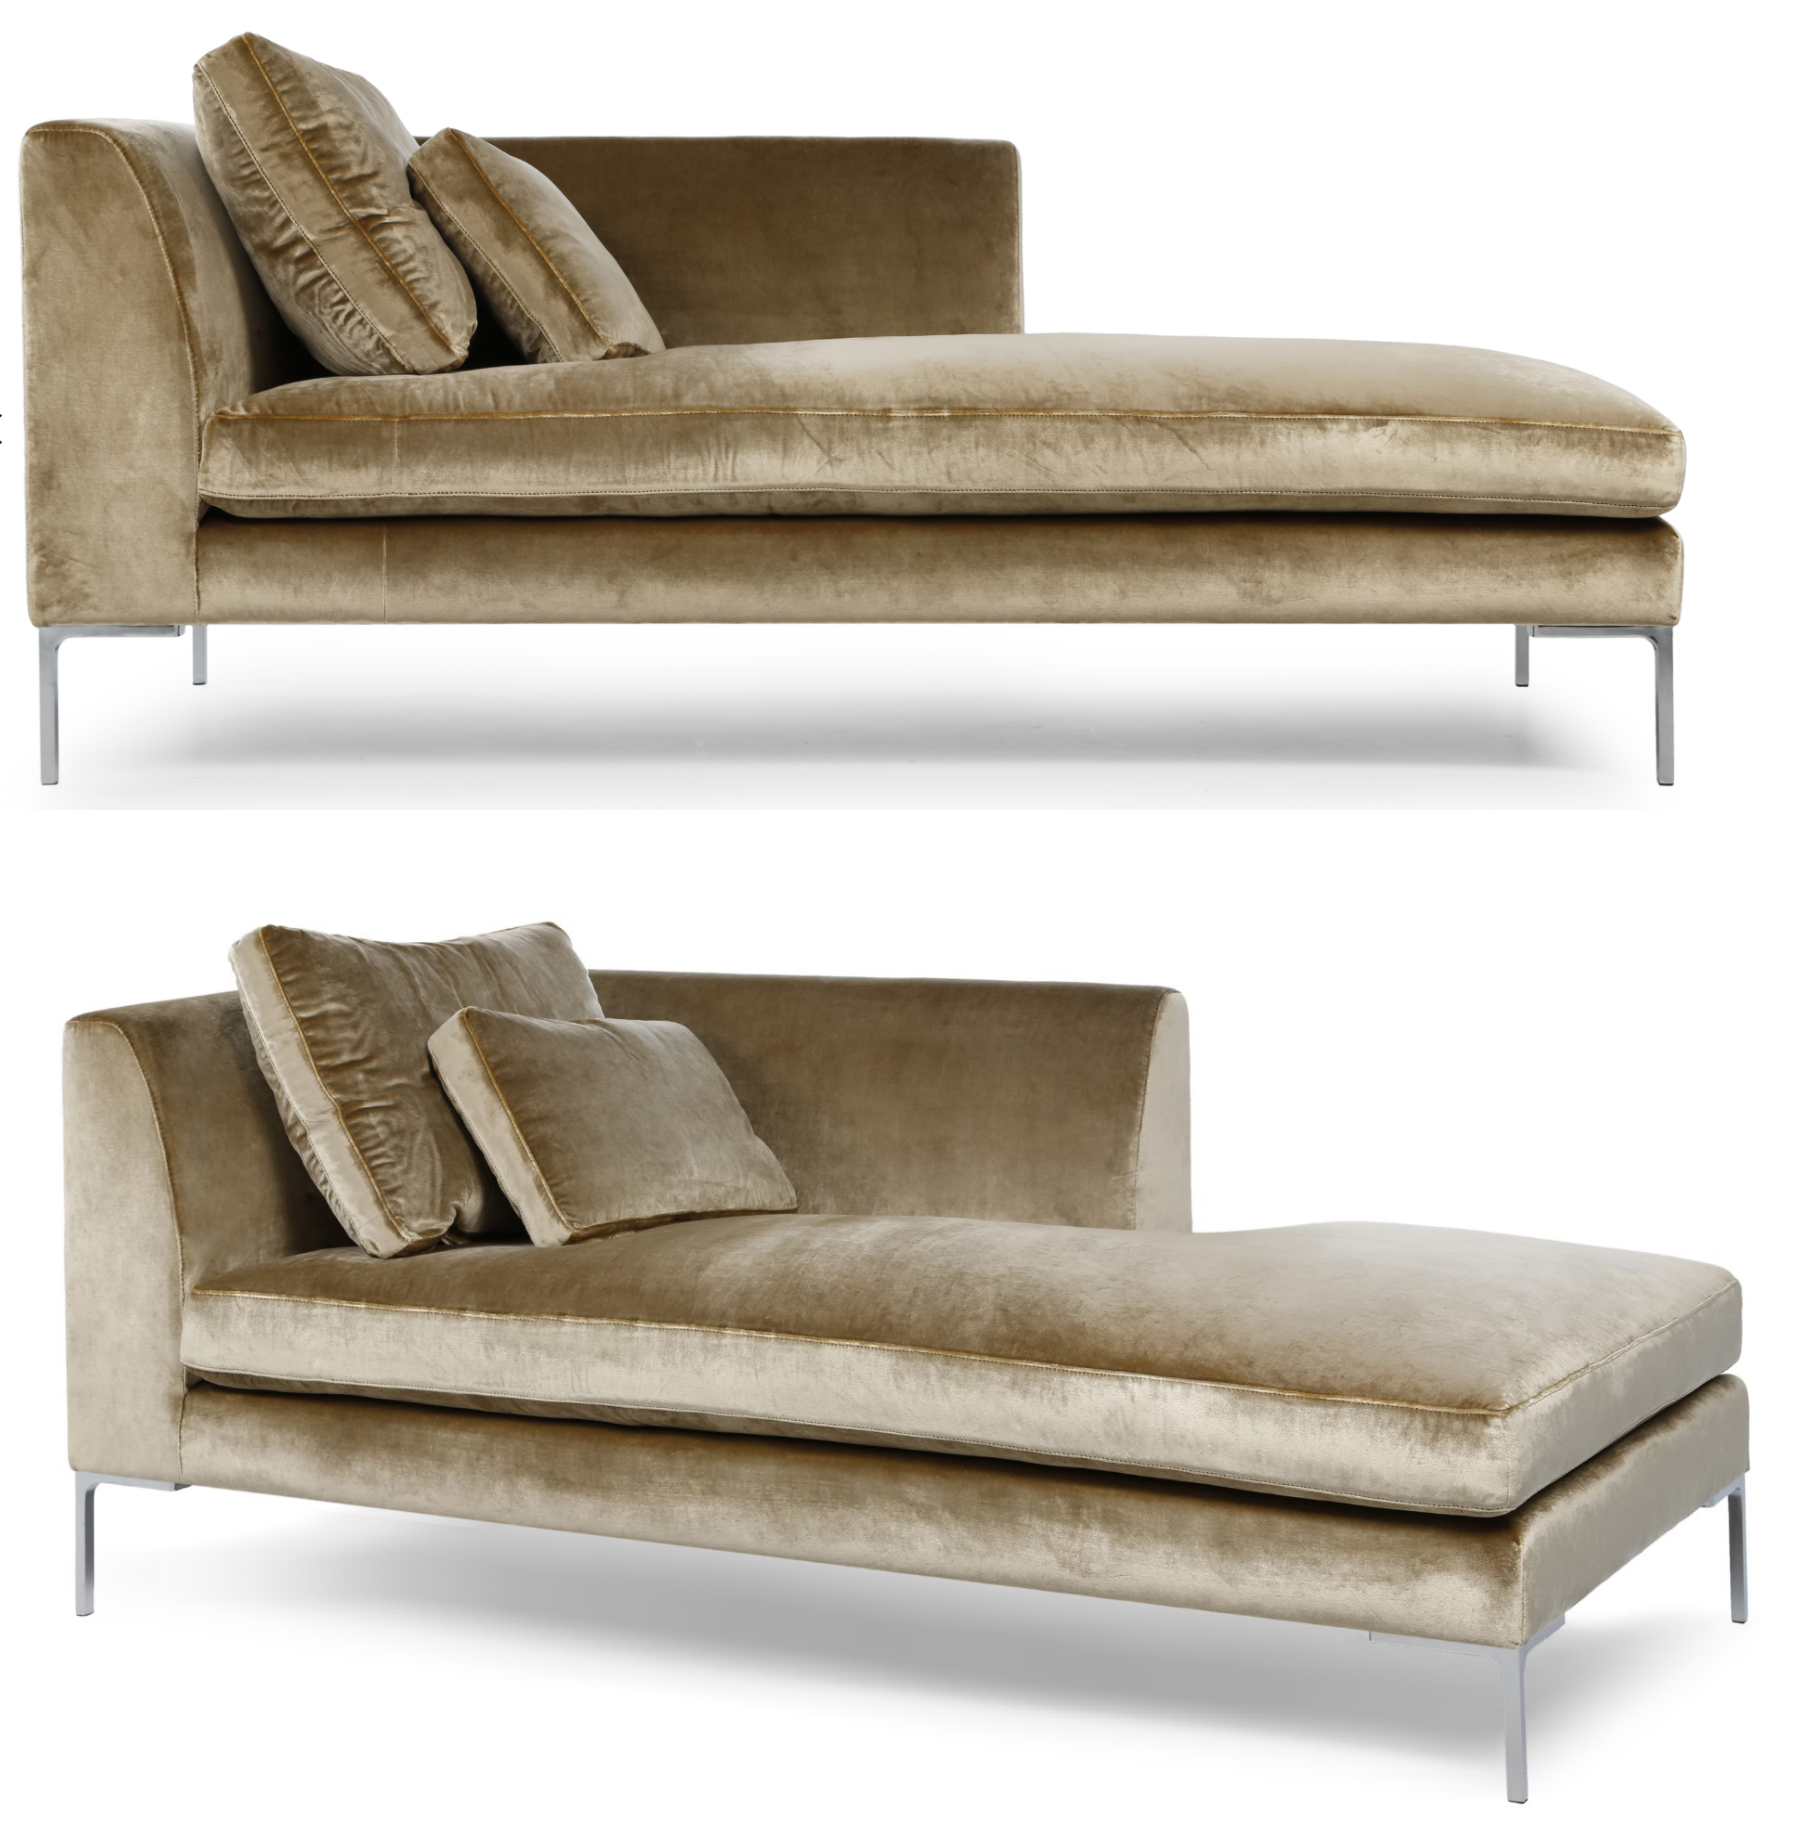 This Sleek And Sophisticated Chaise Longue Is One Of Our